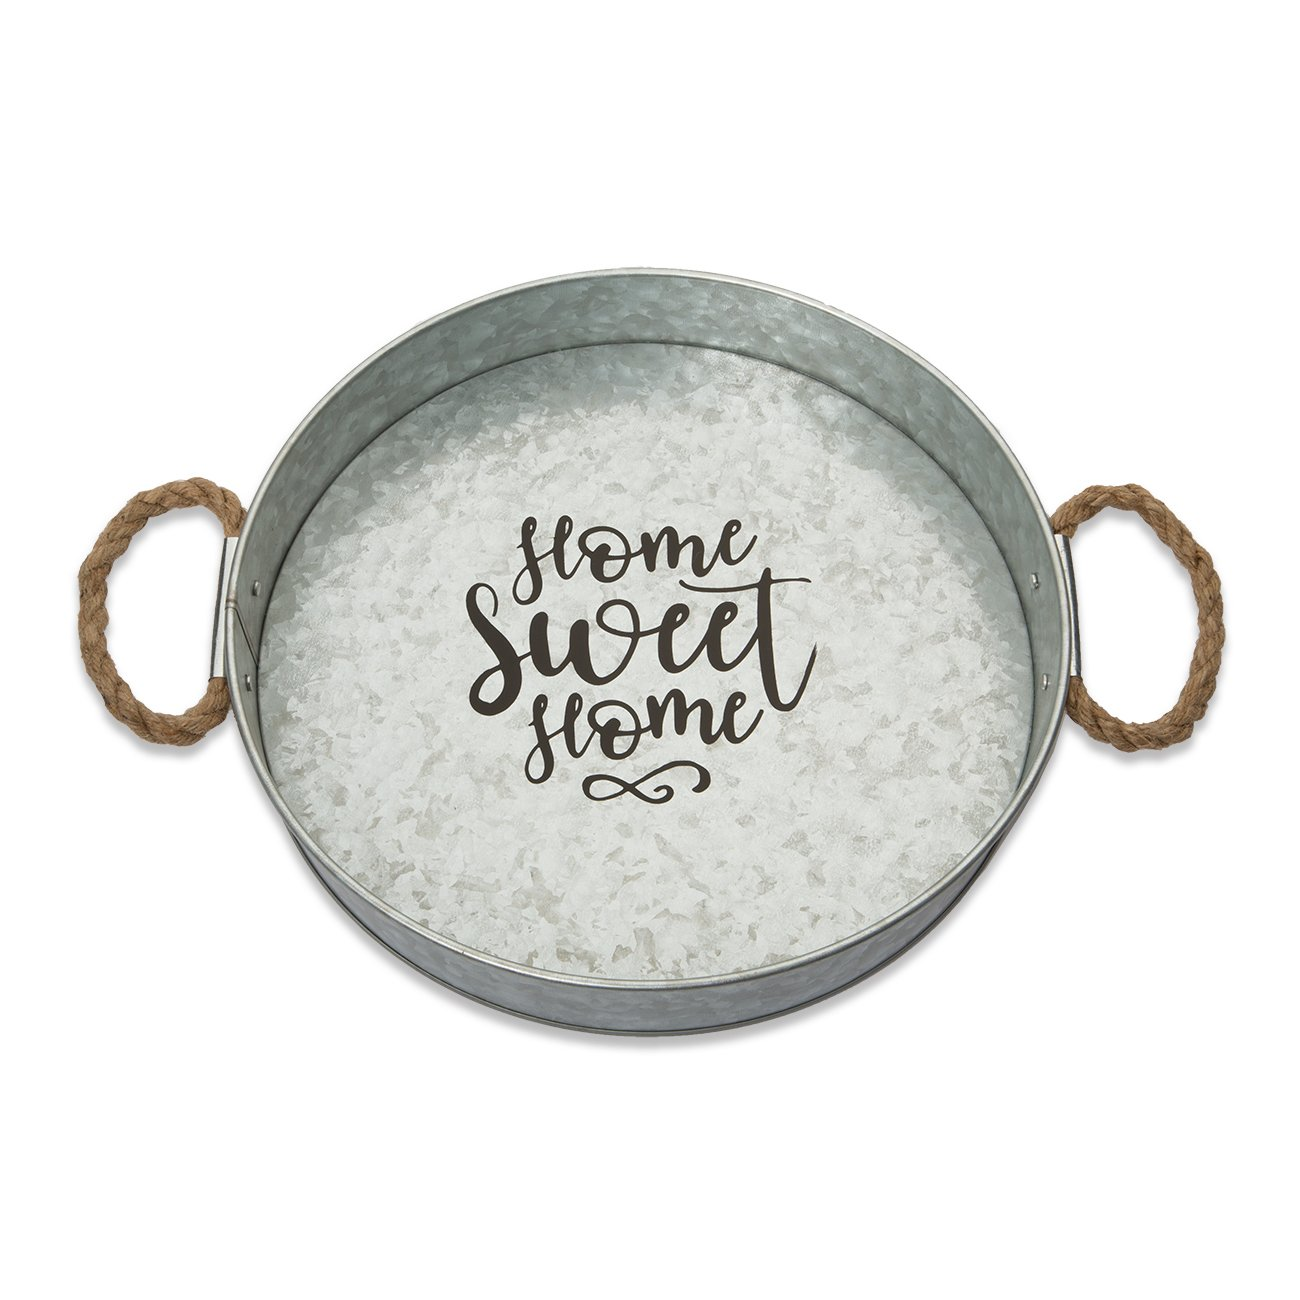 Brownlow Gifts Galvanized Metal Round Serving Tray, Home Sweet Home